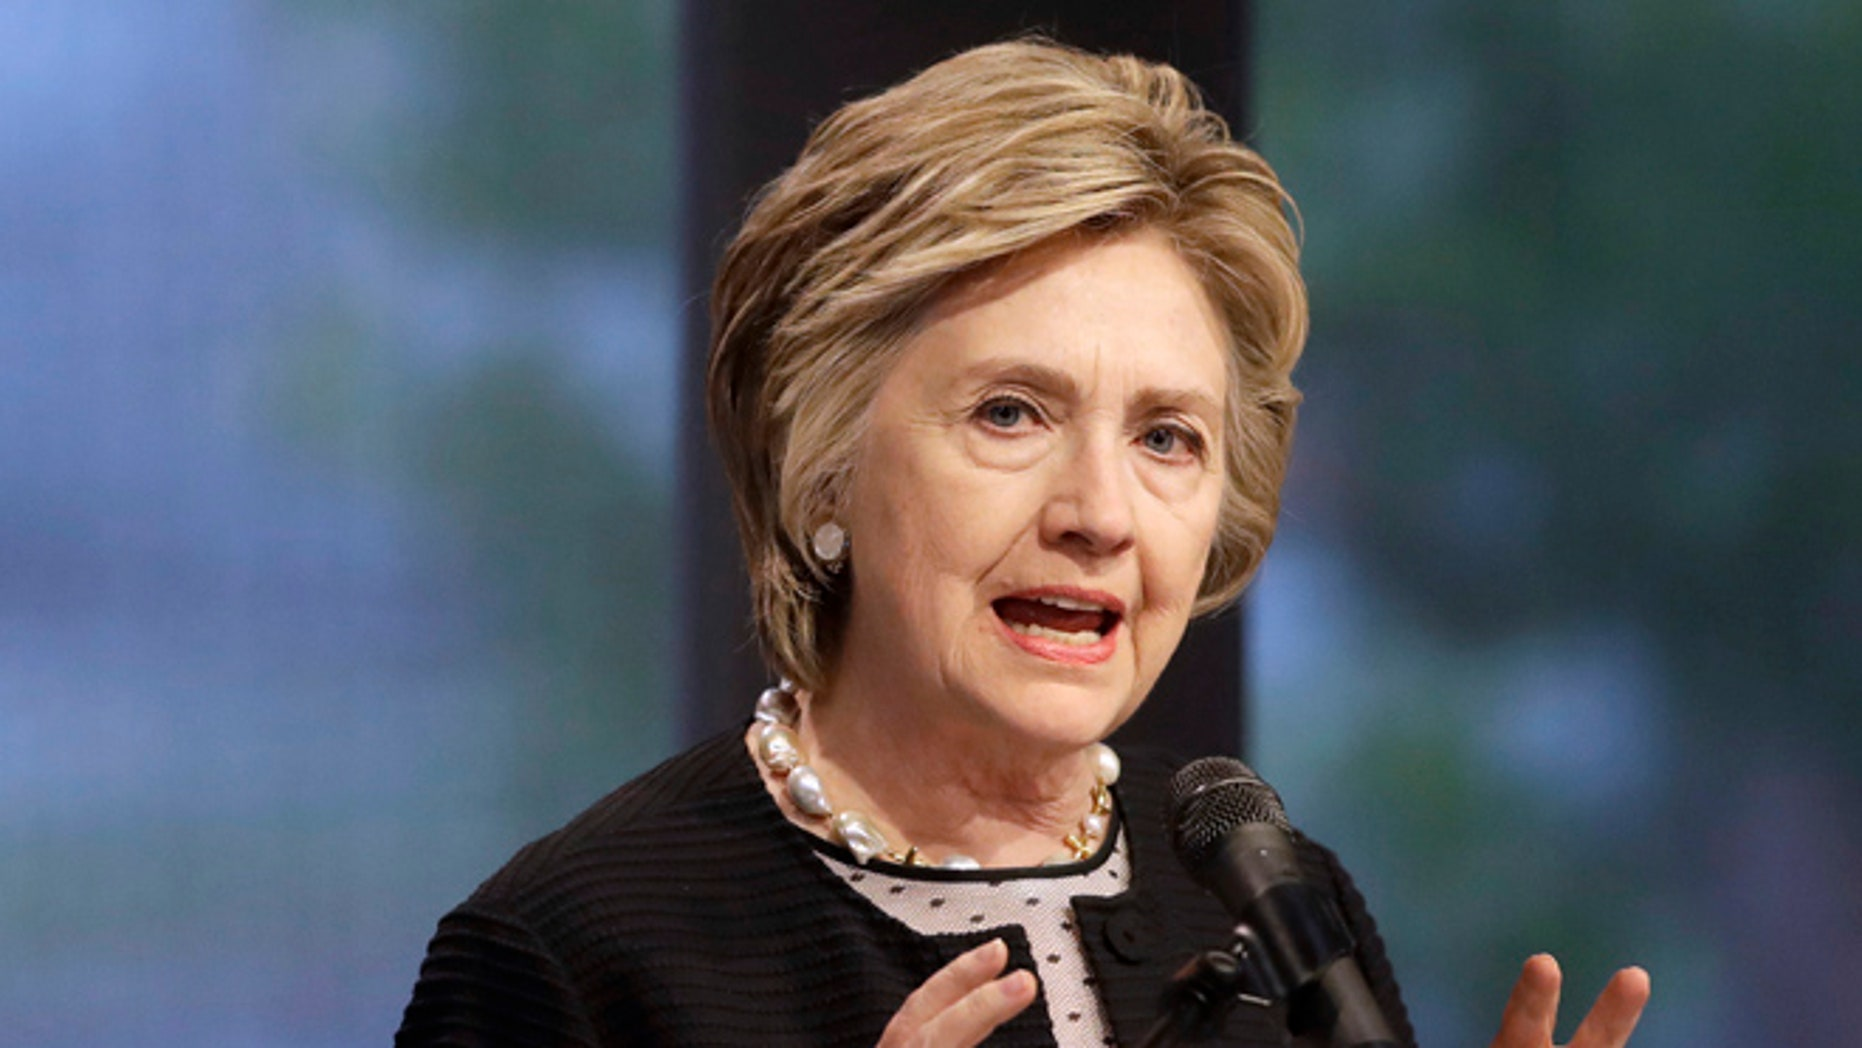 """Former Democratic presidential candidate Hillary Clinton referred to President Trump in an interview Friday as a """"sexual assaulter"""" before dismissing the past allegations of sexual impropriety against her husband as old news."""